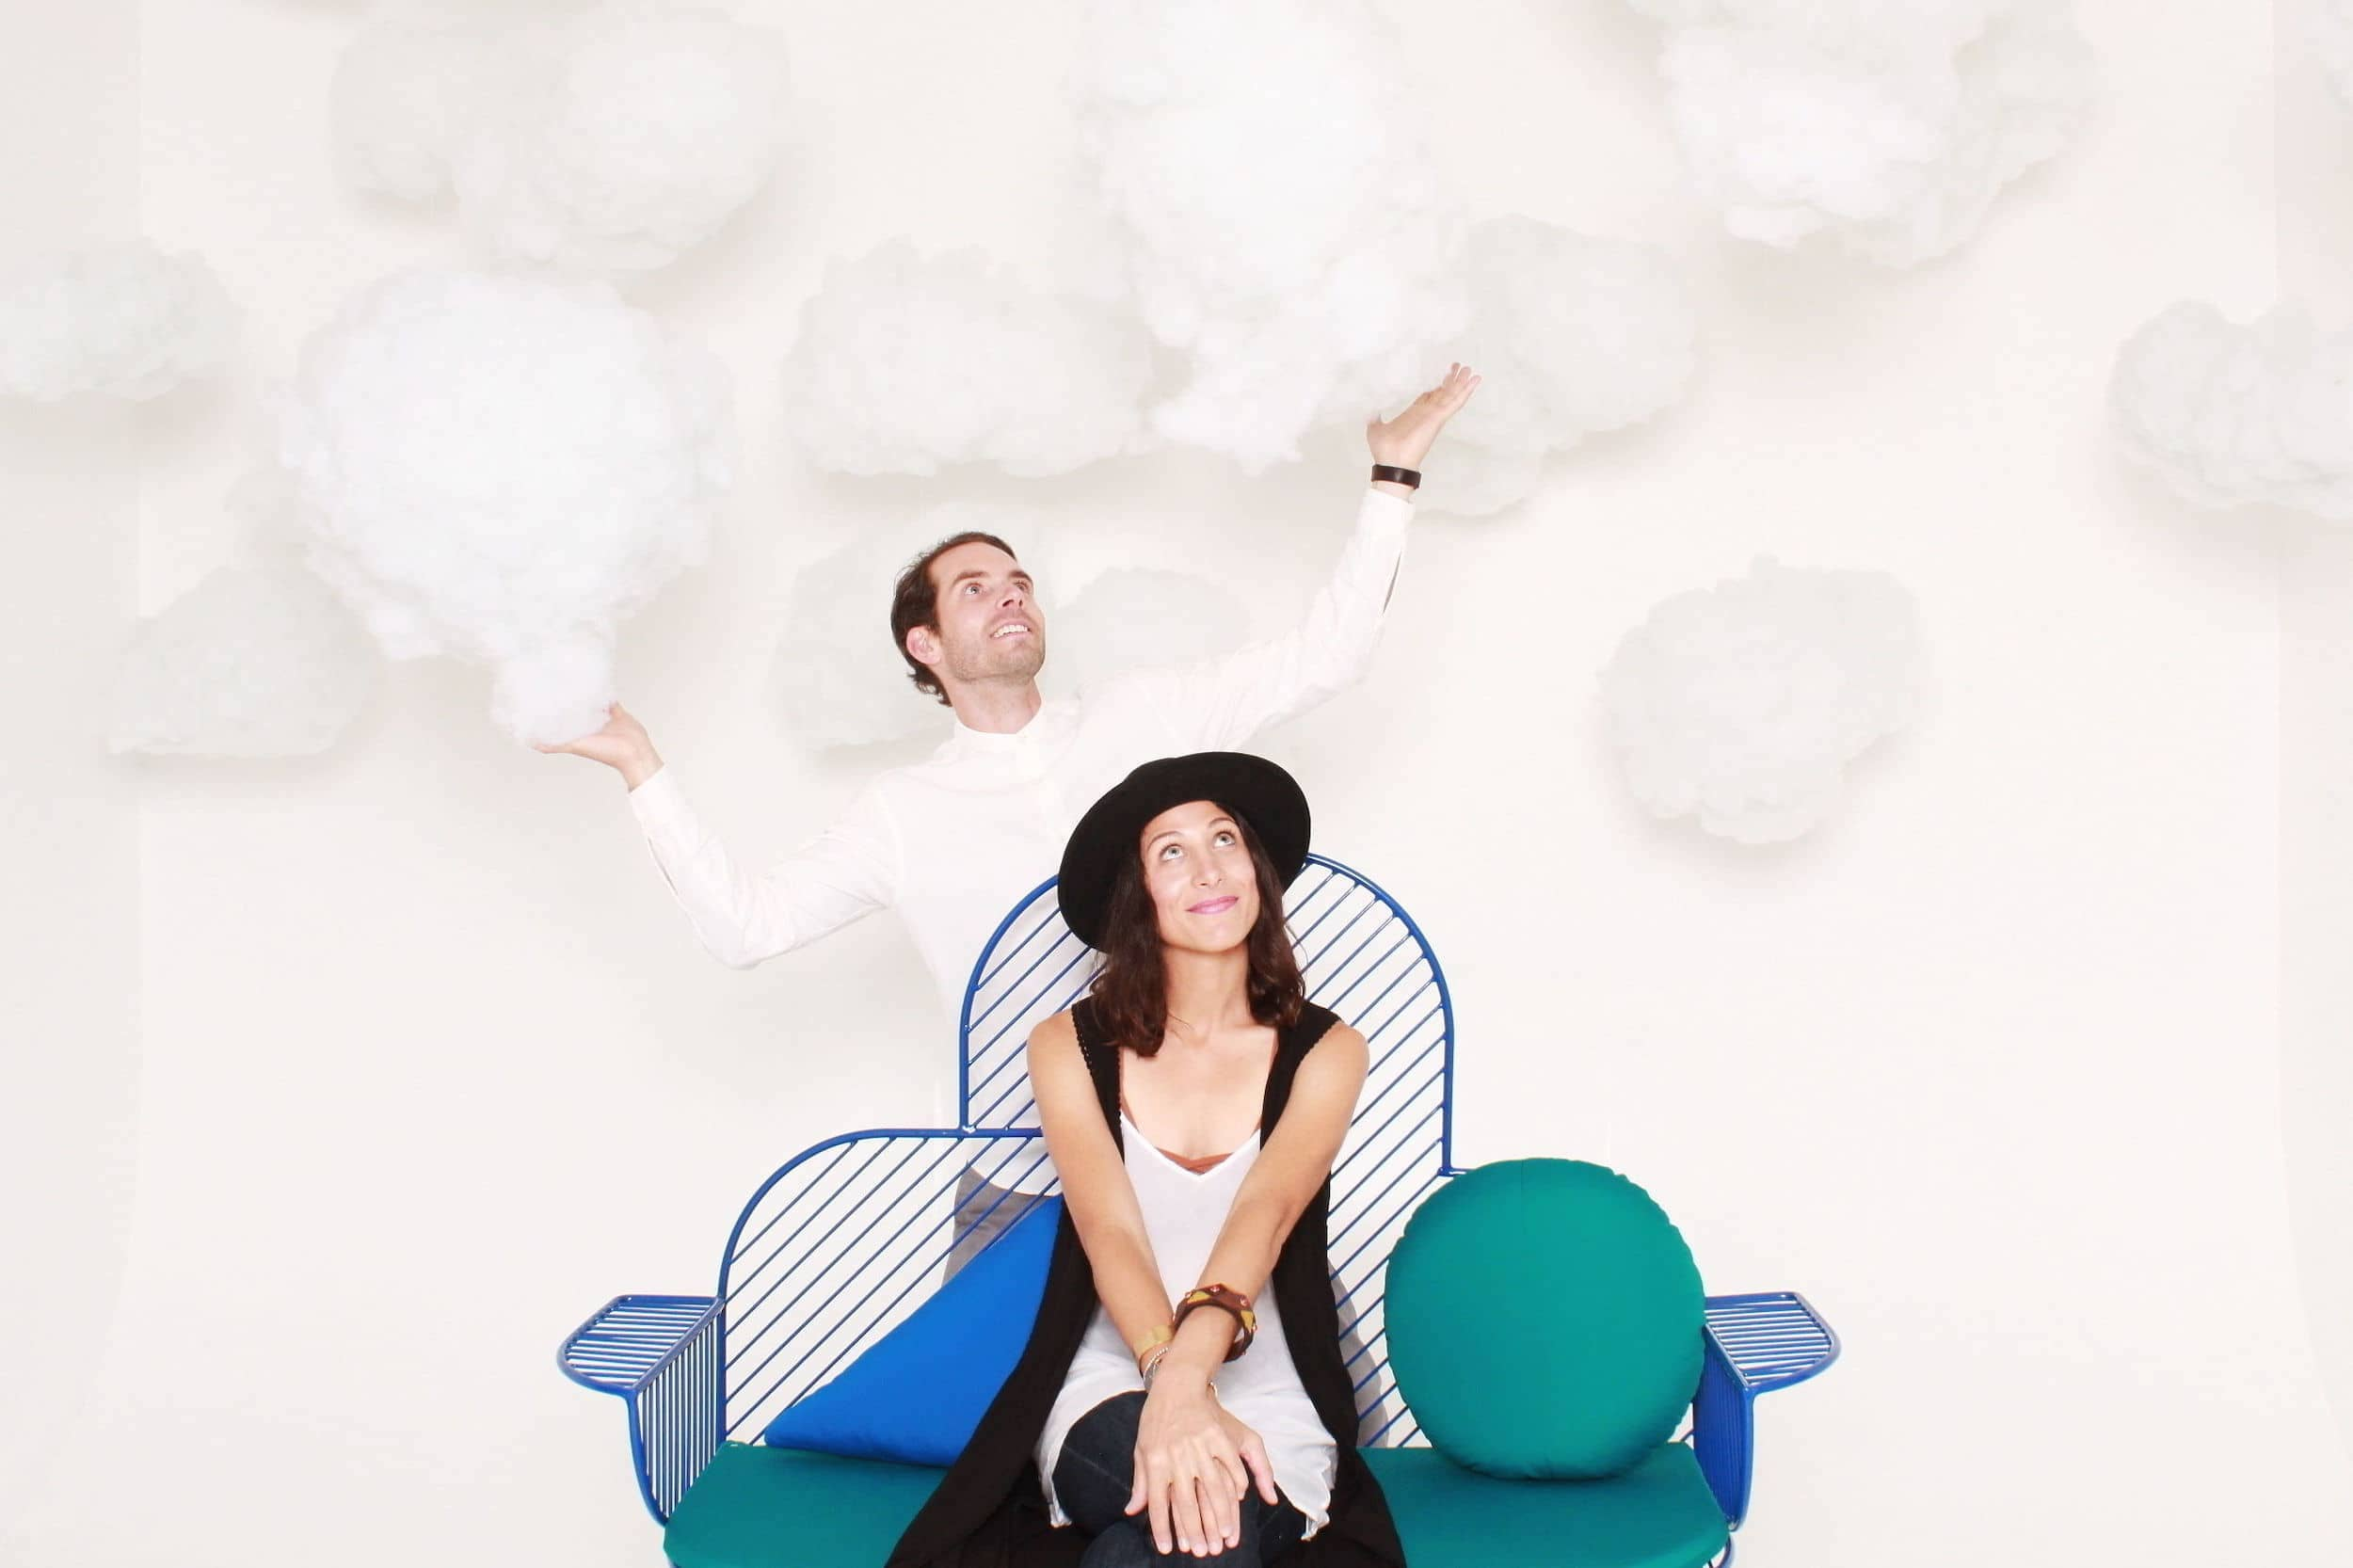 Flying in the clouds set design photo booth